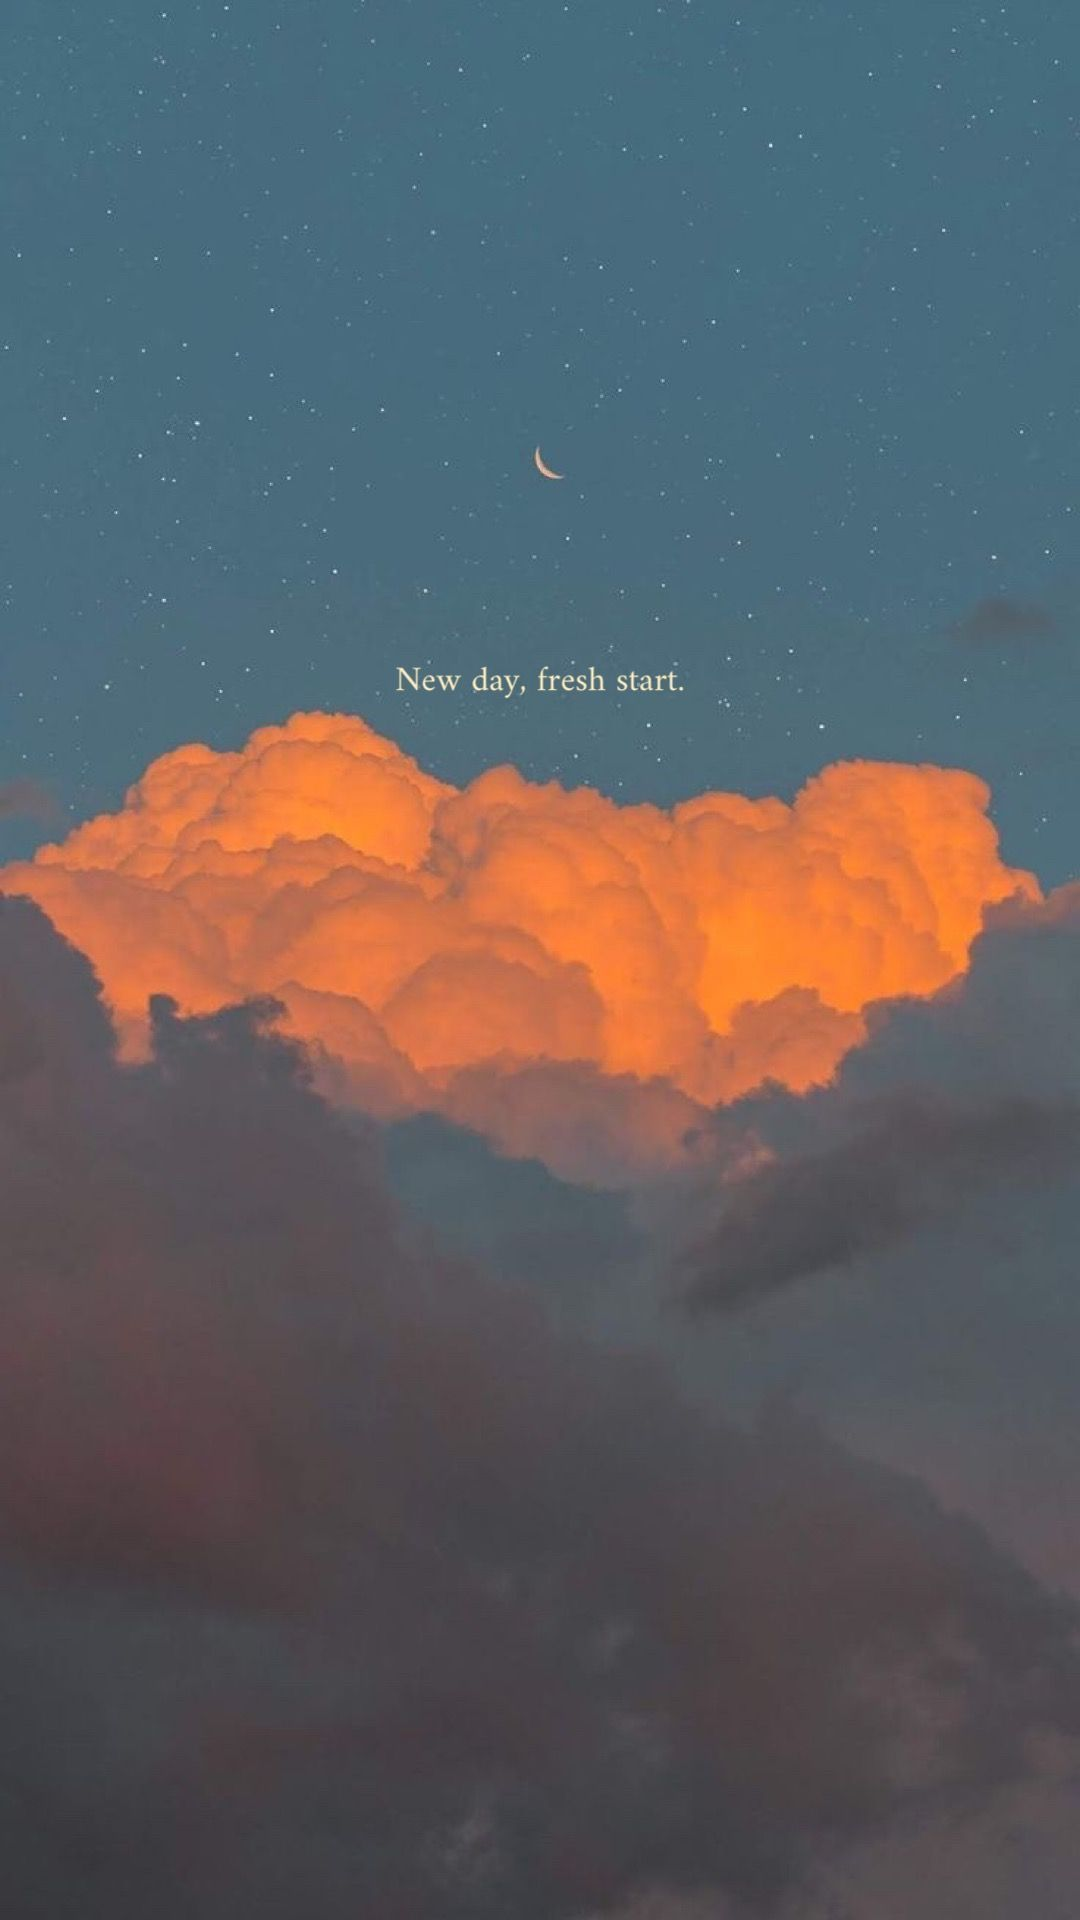 New day, fresh start — Iphone wallpaper quotes sky in 4